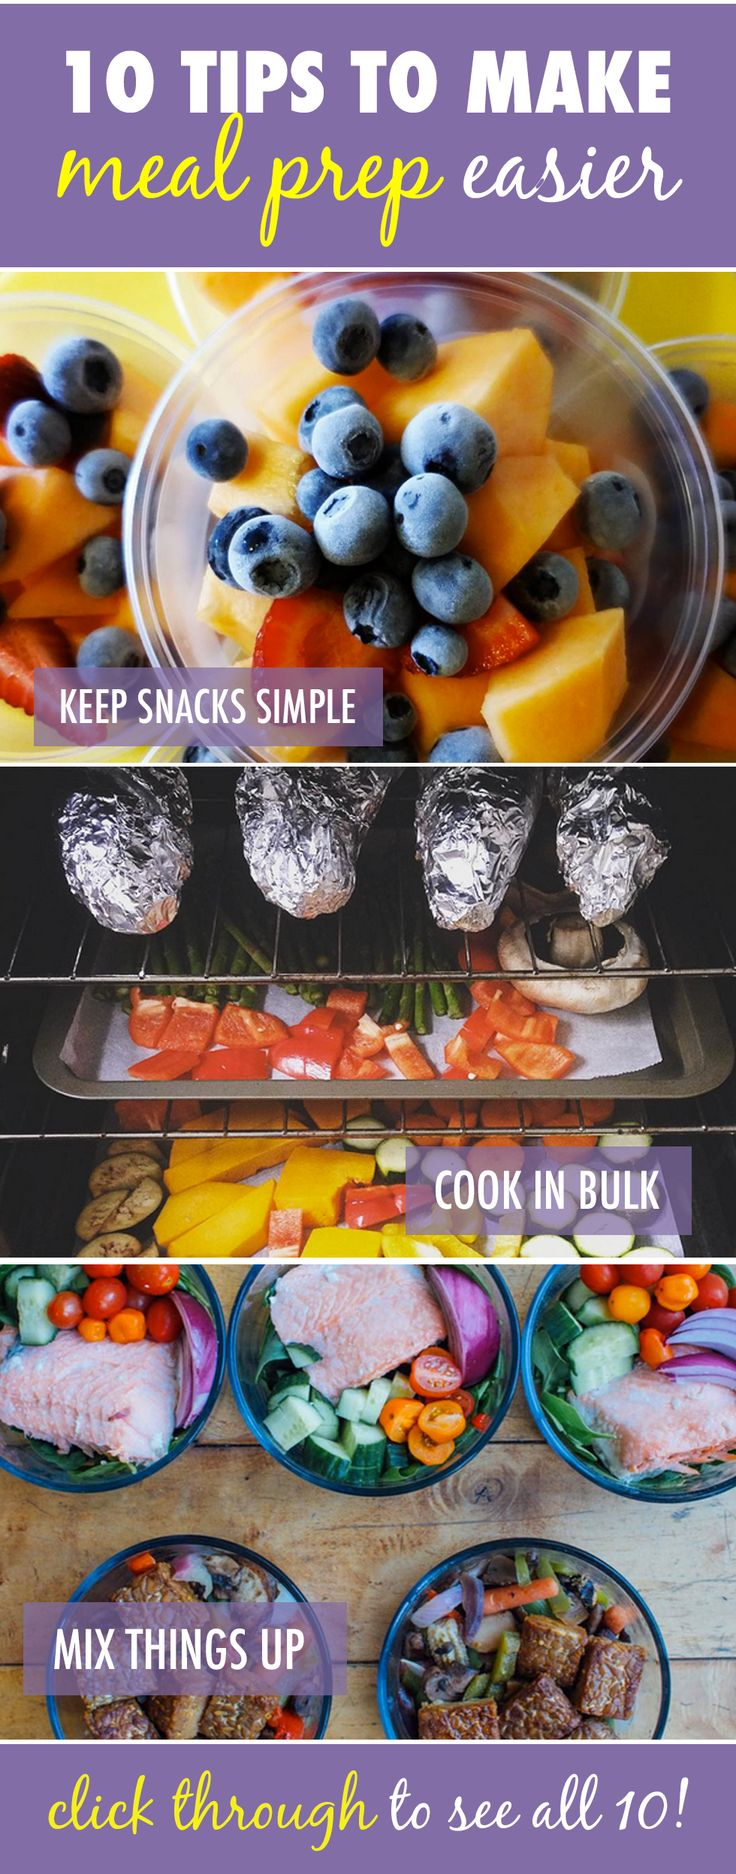 It takes practice to get the hang of planning and prepping your meals. Here are 10 tips to make #MealPrepMonday easier: http://www.beachbody.com/beachbodyblog/nutrition/10-tips-to-make-meal-prep-easier?code=SOCIAL_21F_PI // fitness // fitspo // workout